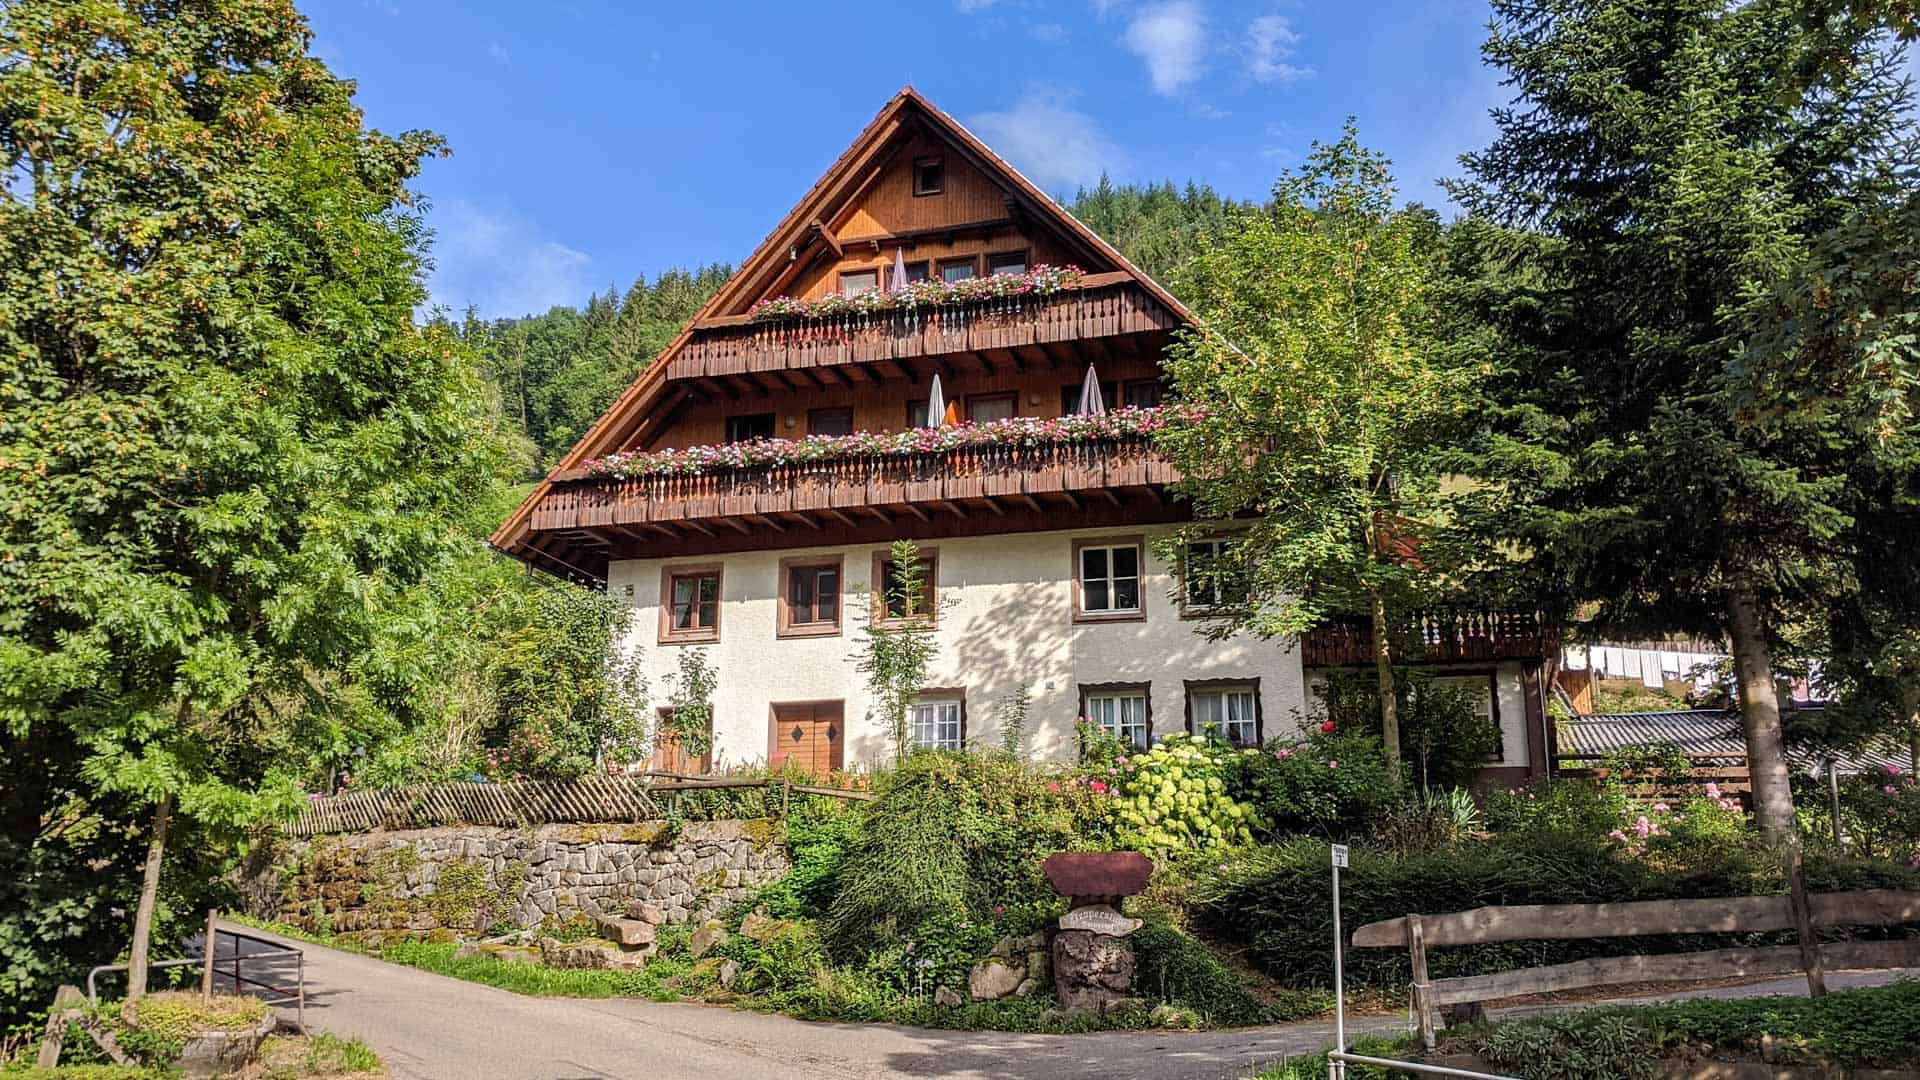 The Bartleshof in the Black Forest